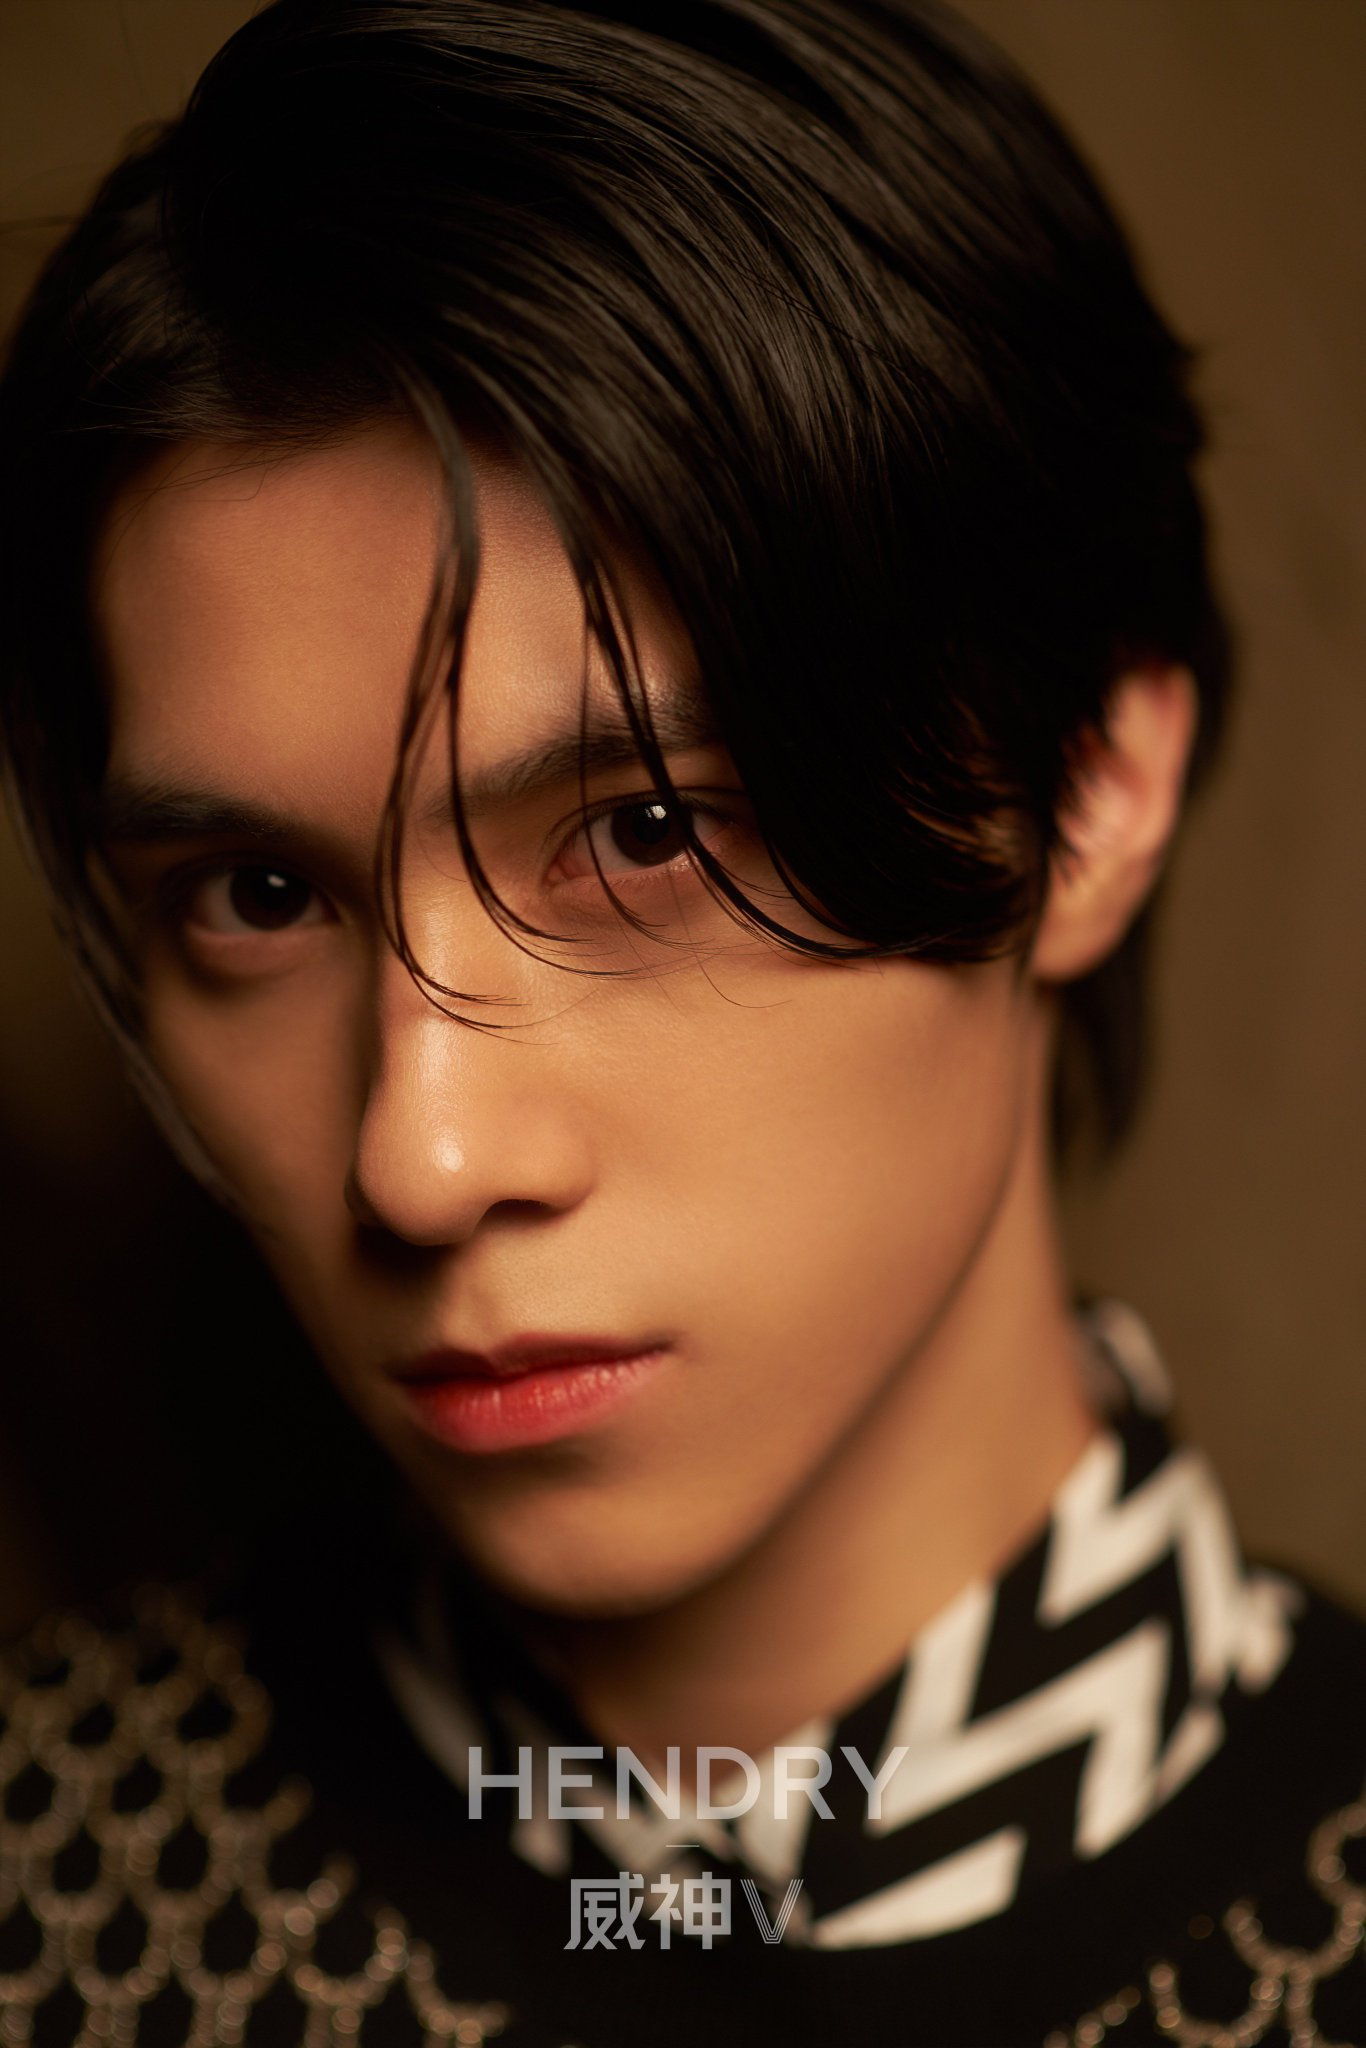 Wayv Teases Another Teaser Images Featuring Hendery Kpopping